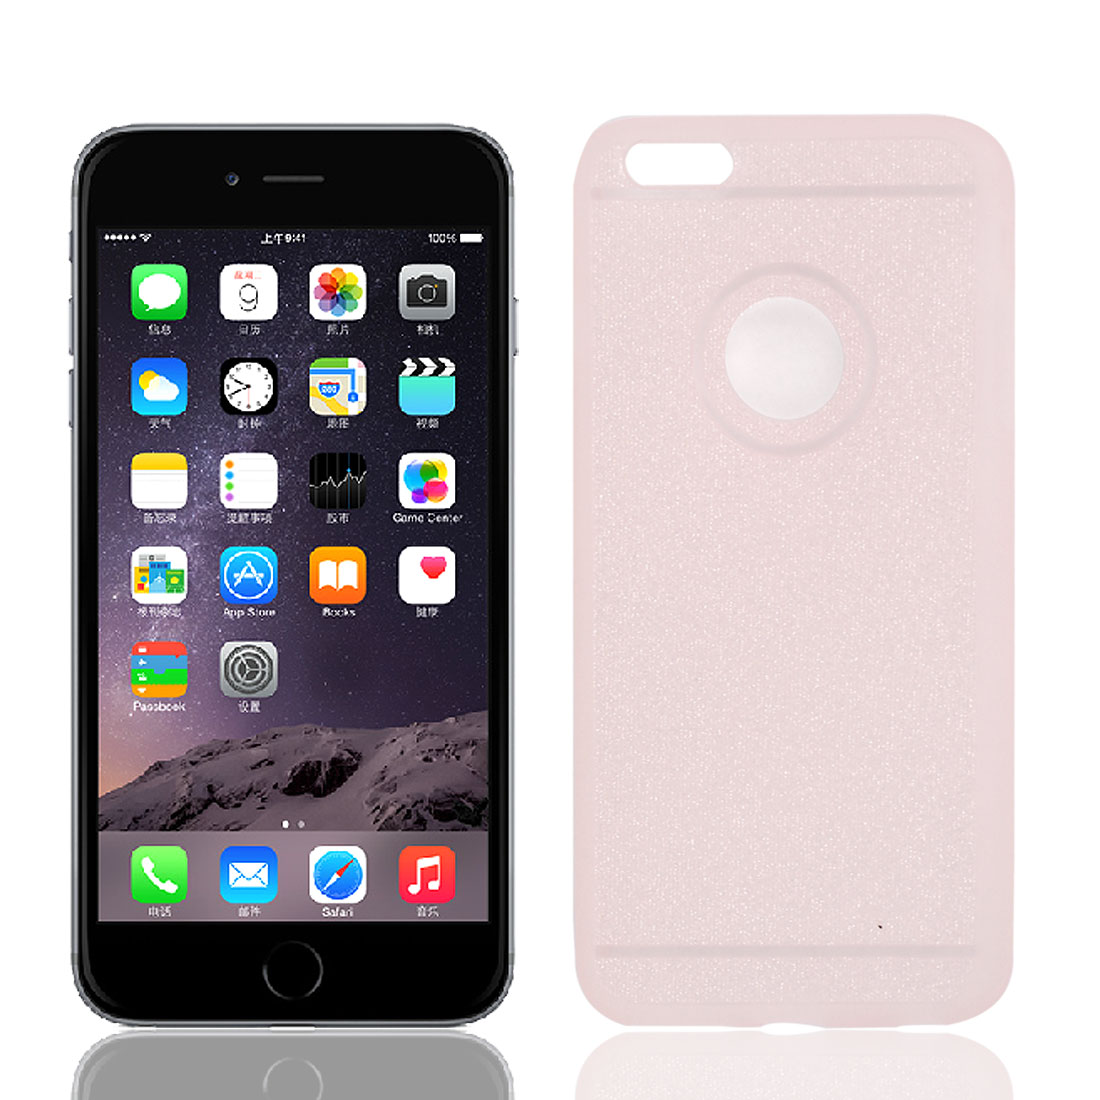 TPU Thin Glitter Powder Protective Cover Case Pink for Apple iPhone 6 Plus